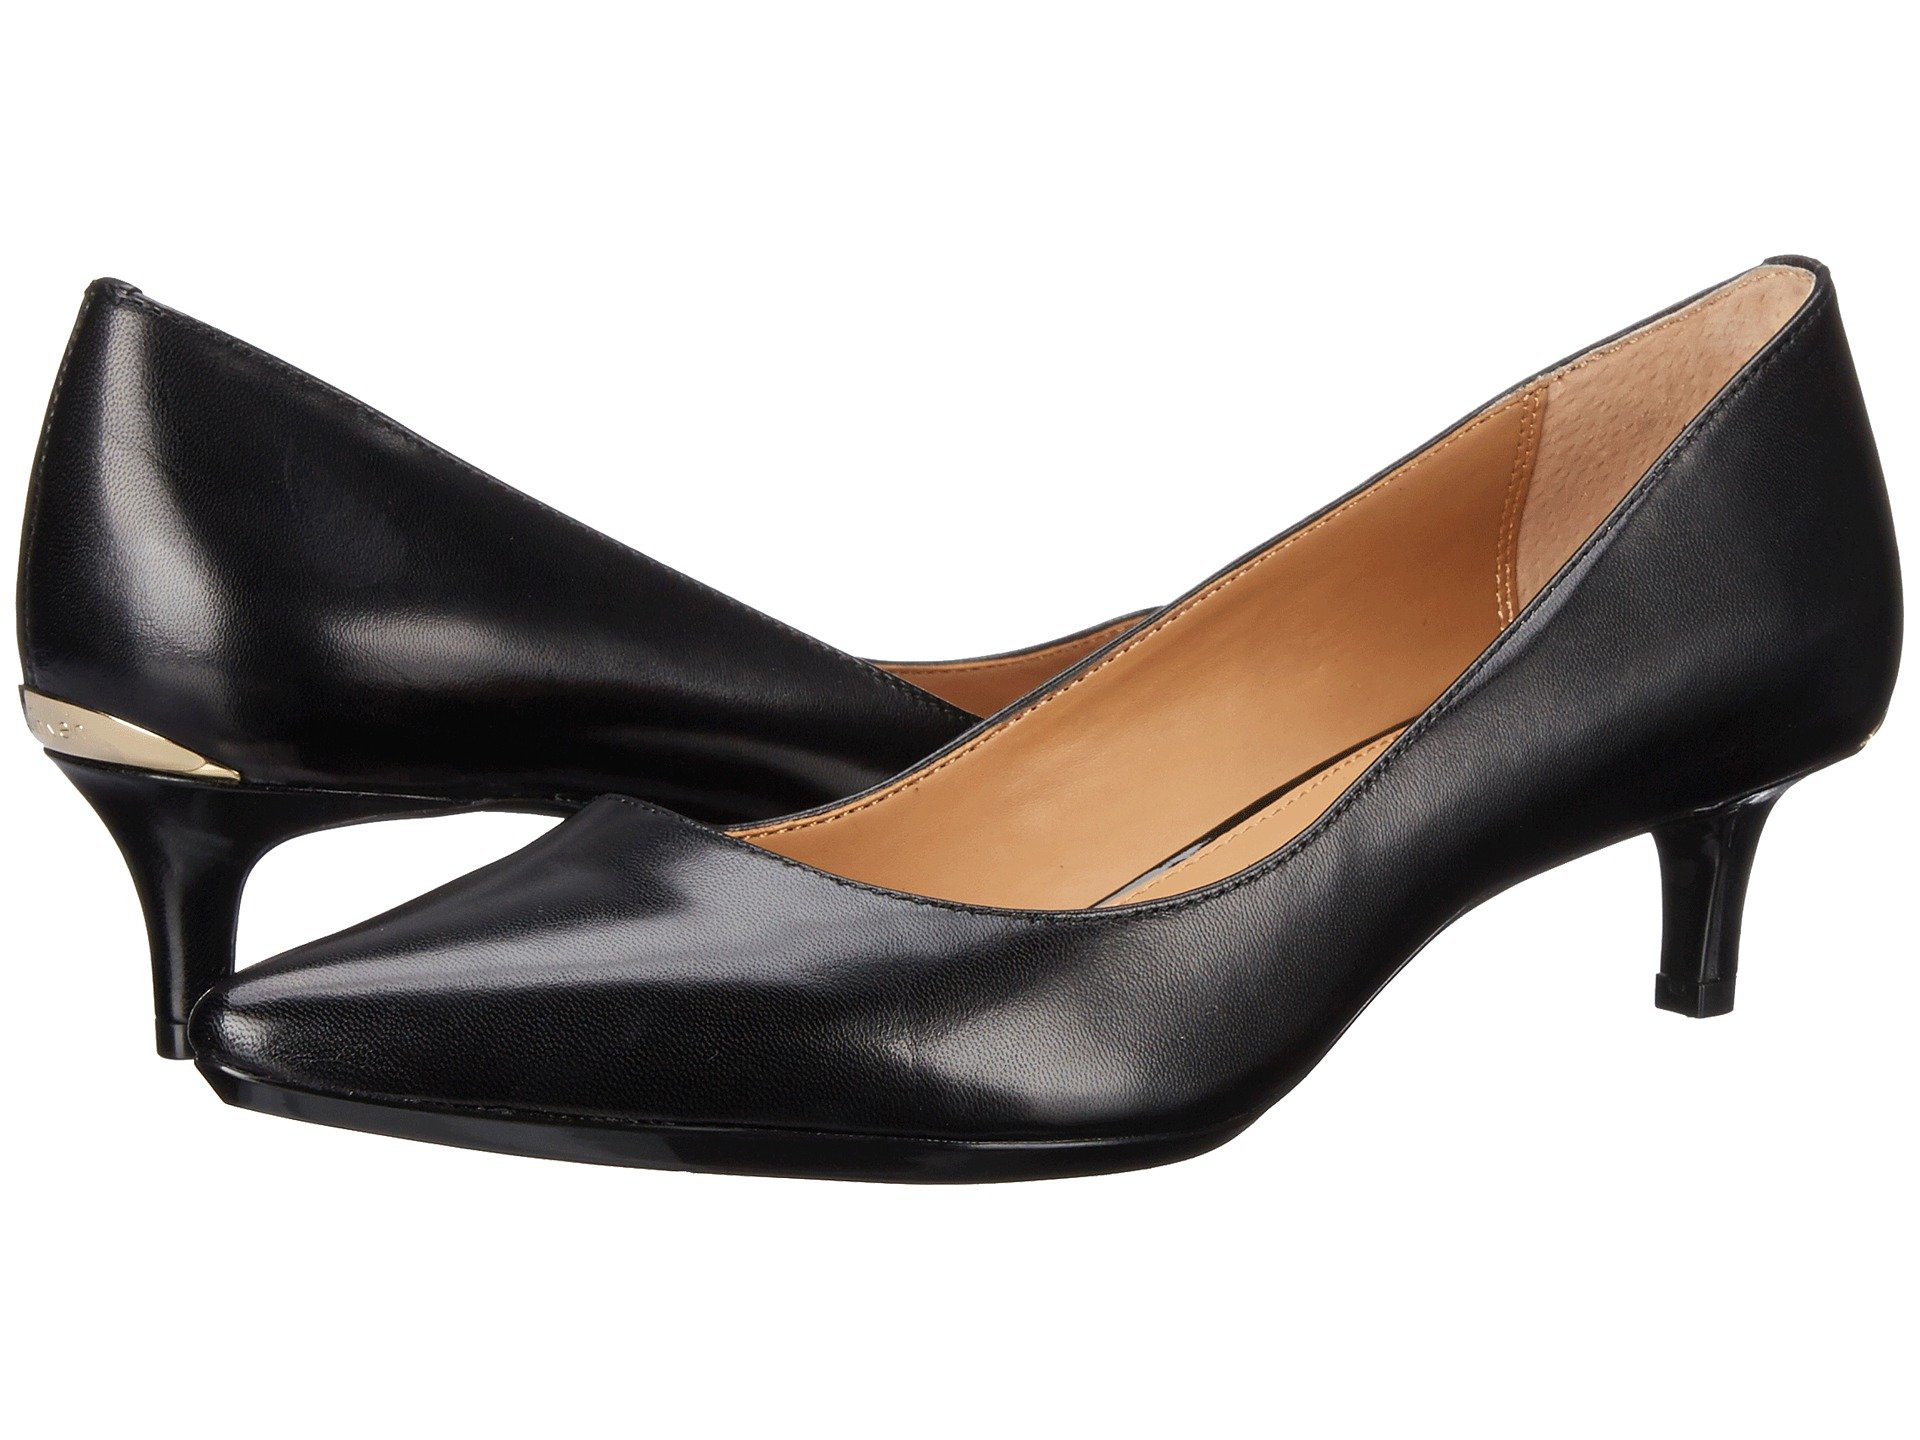 Anne Klein Womens finn Leather Pointed Toe Classic Pumps Black Size 7.0 SAah